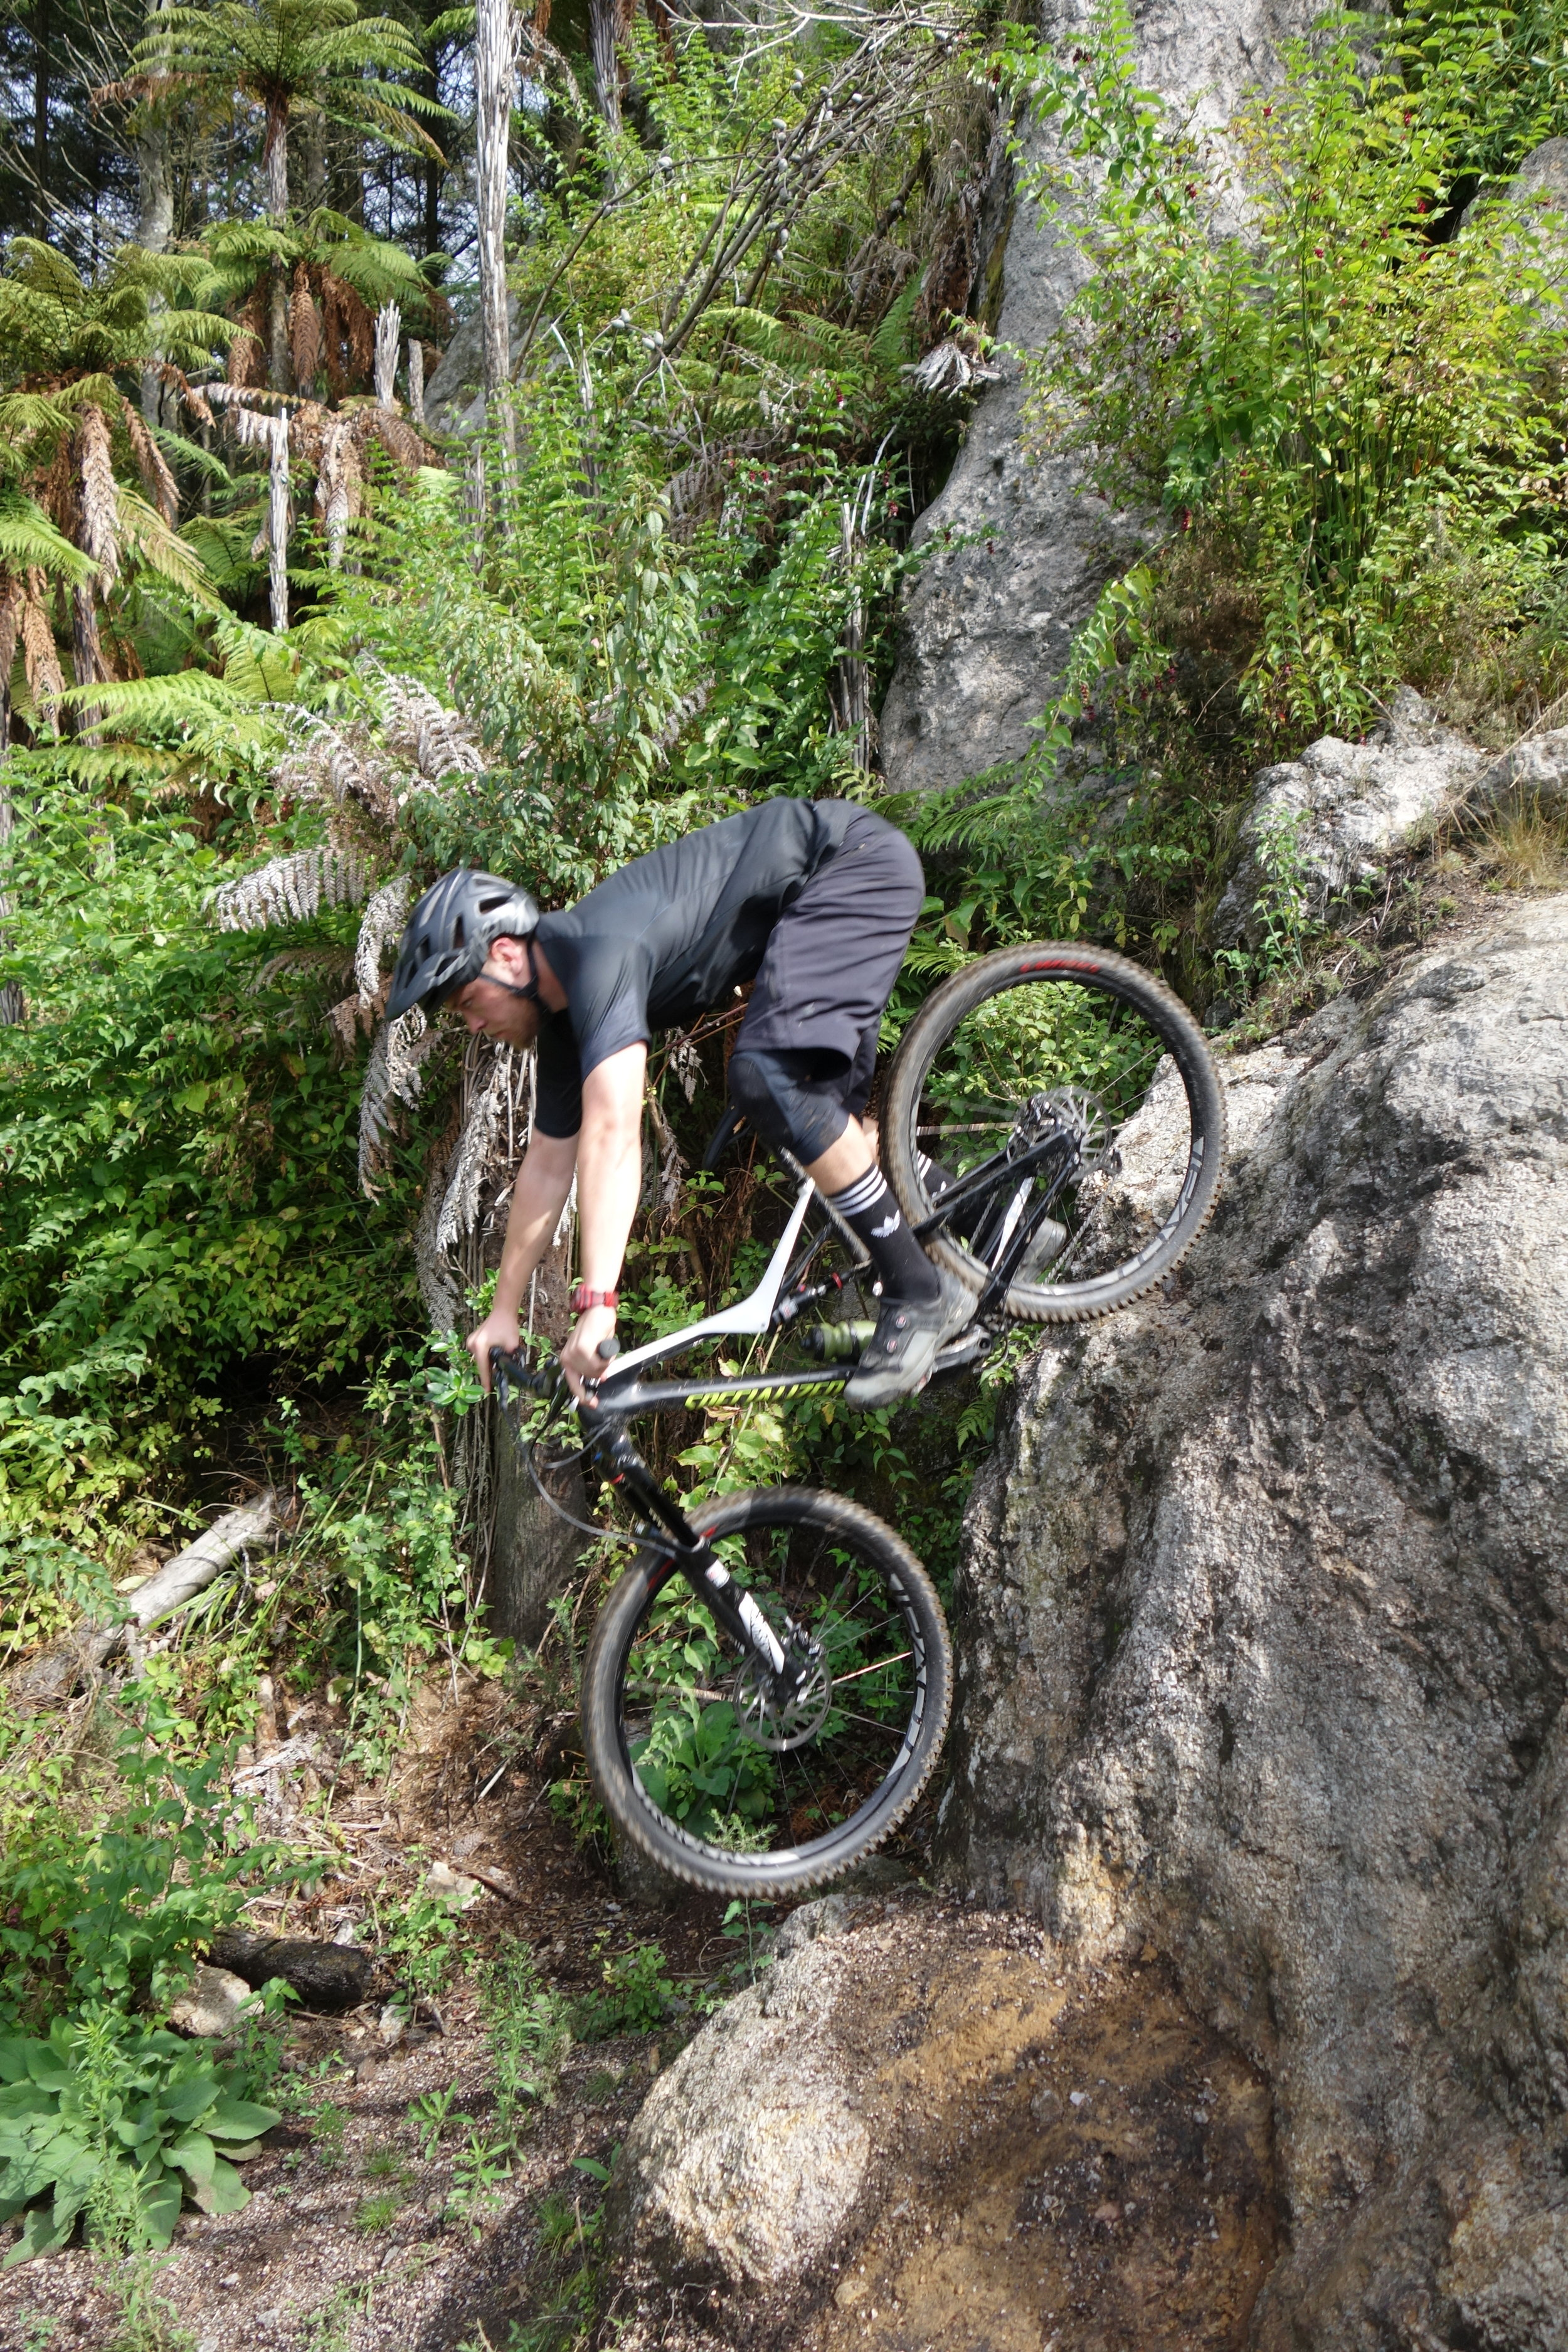 The rock drop on Boulder Dash is pretty damn steep when viewed from the side (and above). It's borderline over the bars if you try and roll it. Caleb again...RAD!